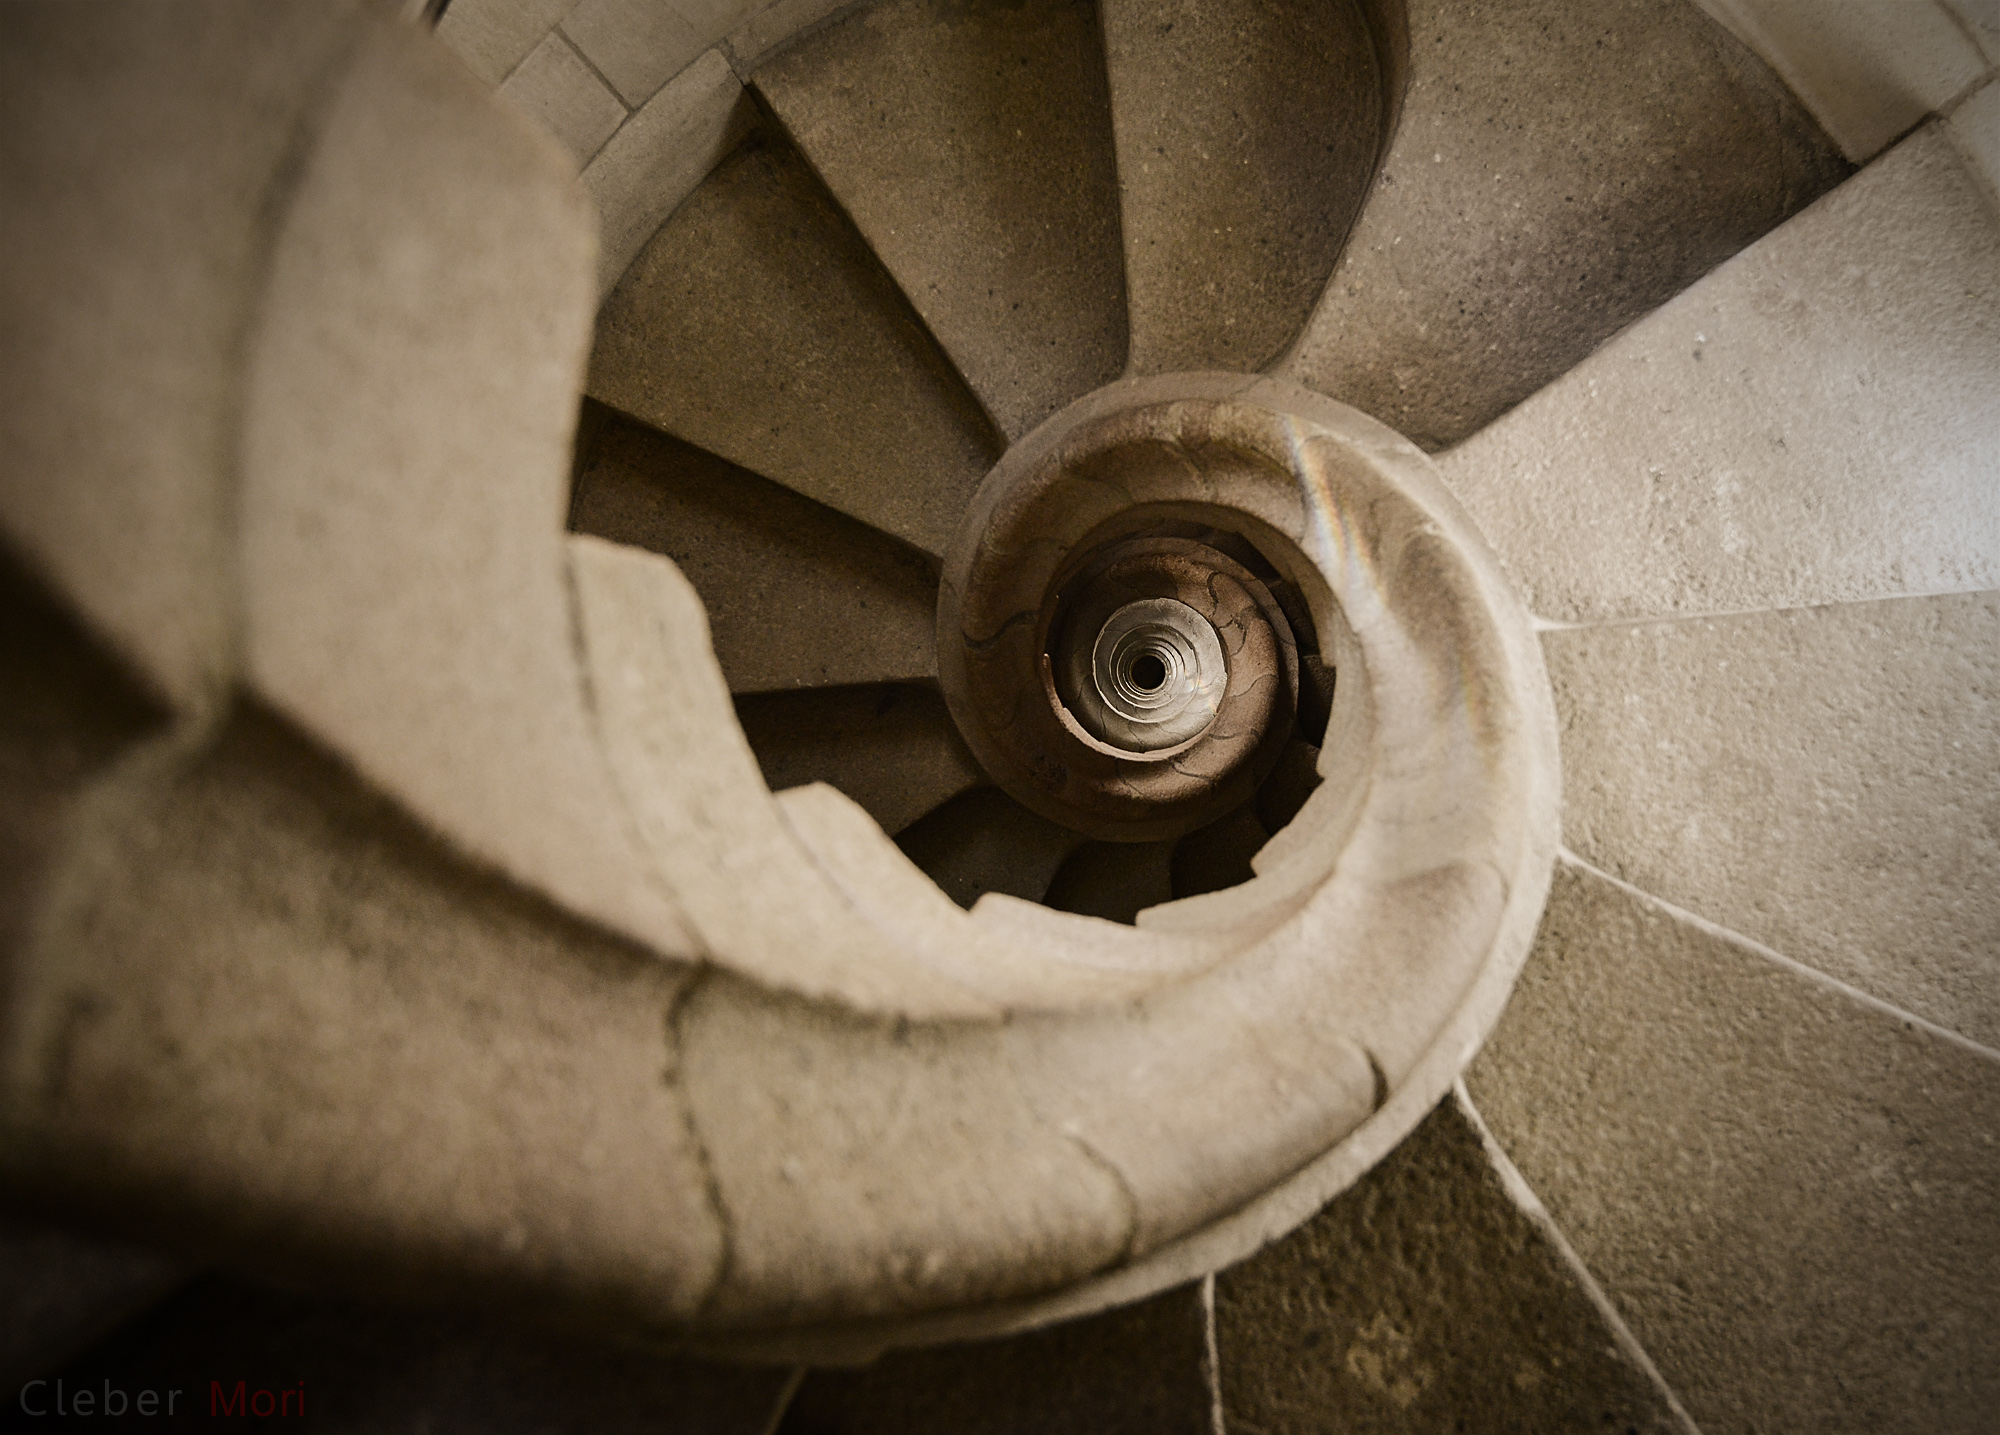 Stairs at the Sagrada Familia, Barcelona. Image credit Cleber Mori.